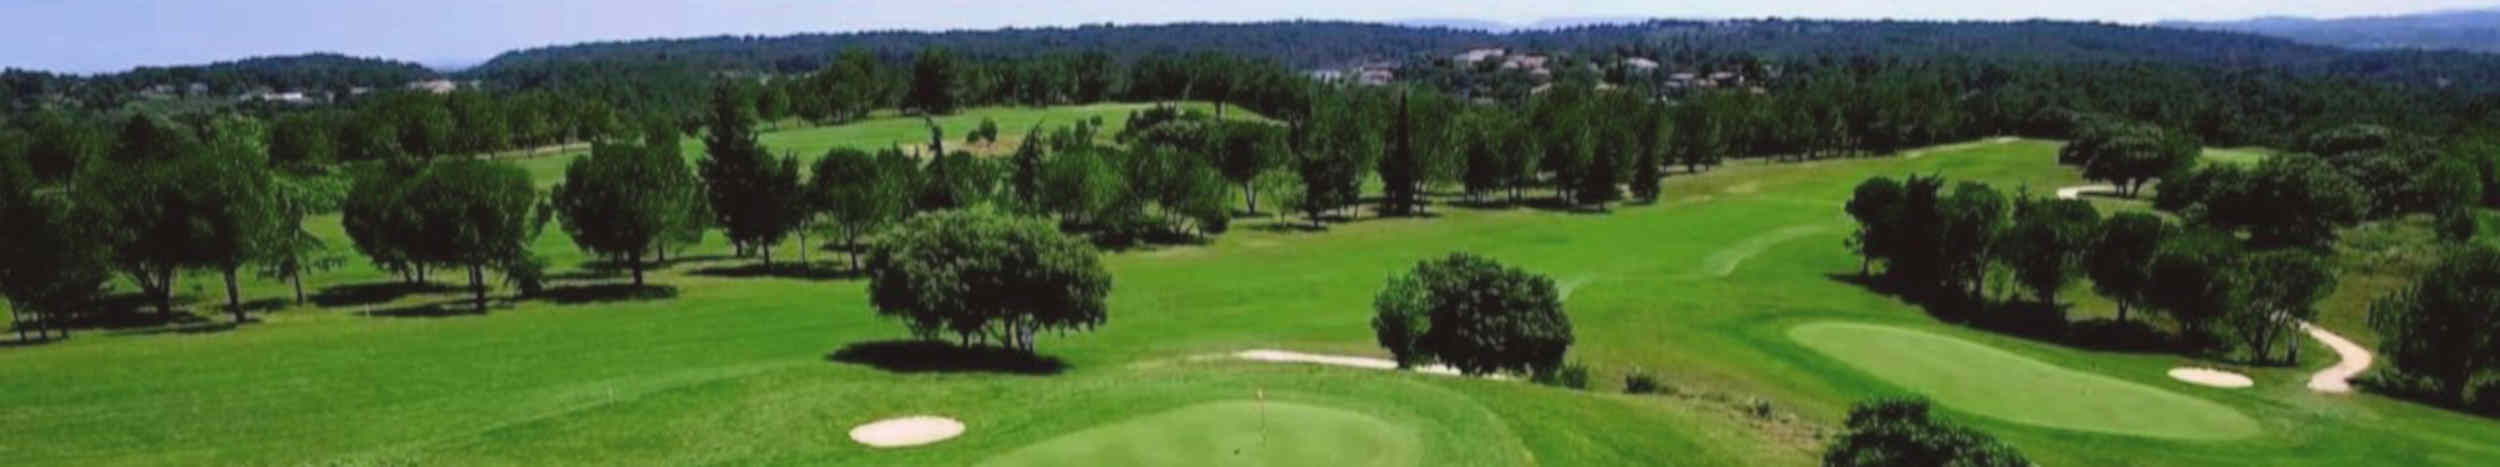 Sud France Golf - Golf de Coulondres